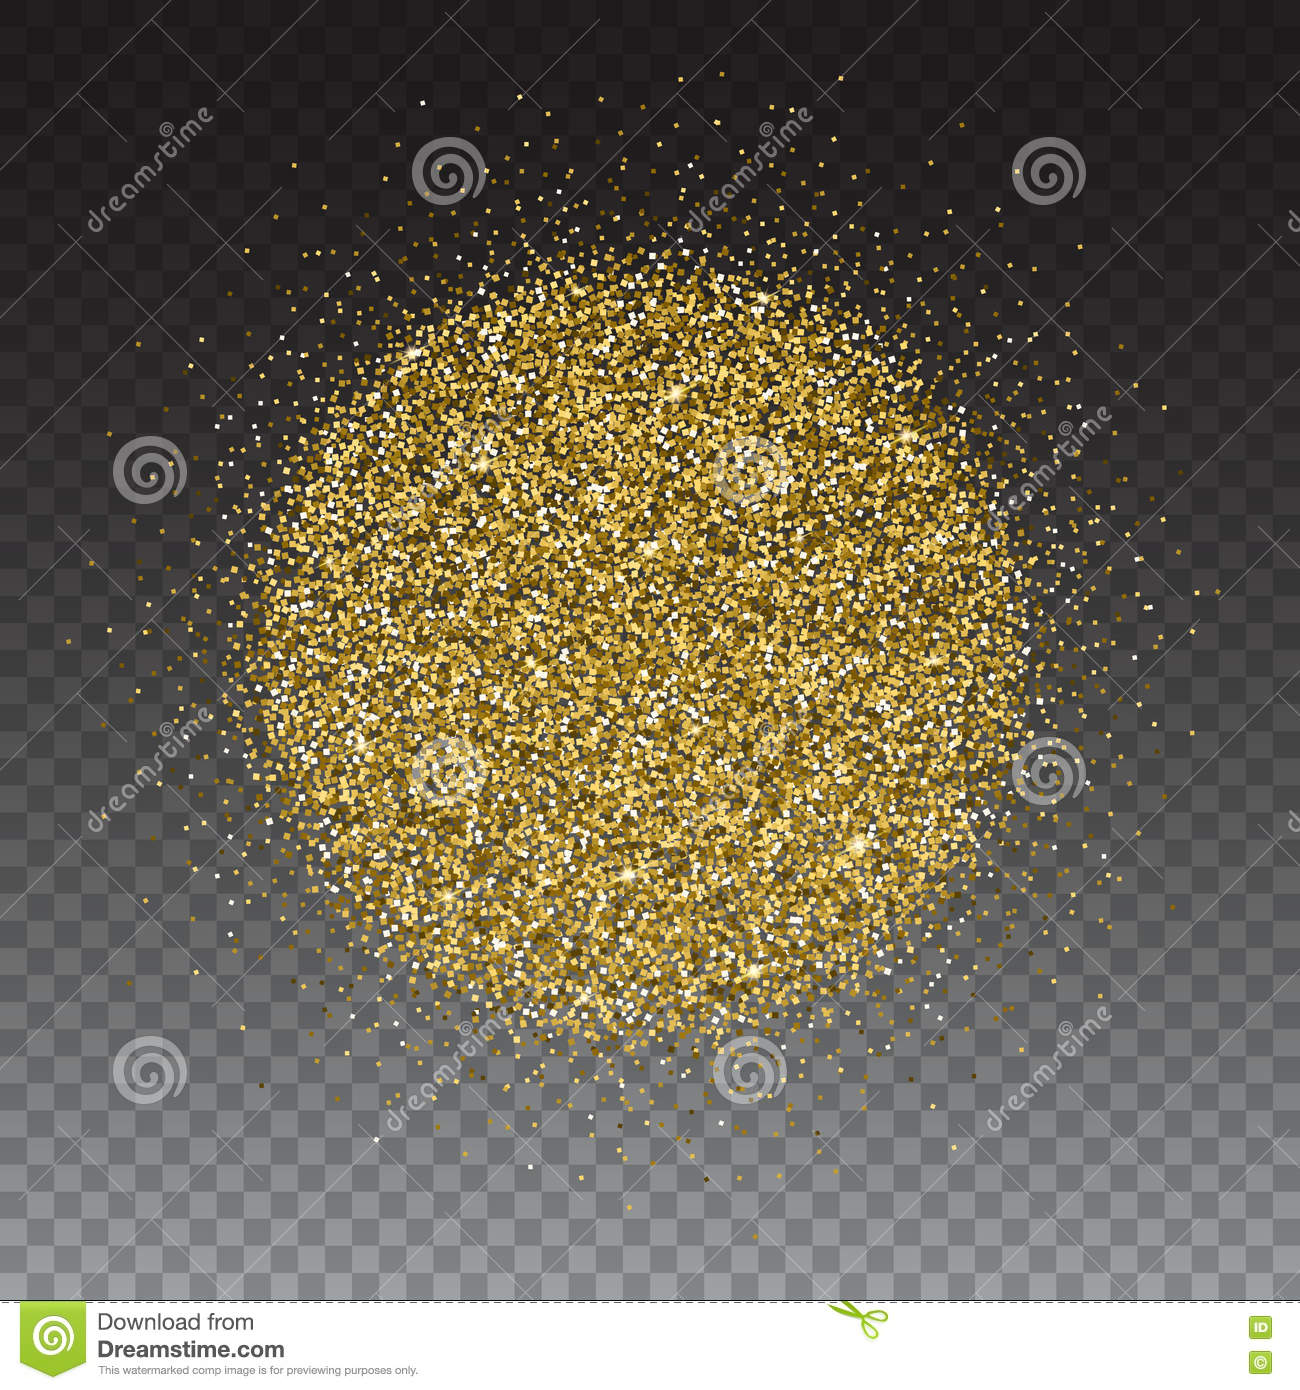 Gold glitter bright vector transparent background golden sparkles - Gold Glitter And Bright Sand Transparent Background Stock Vector